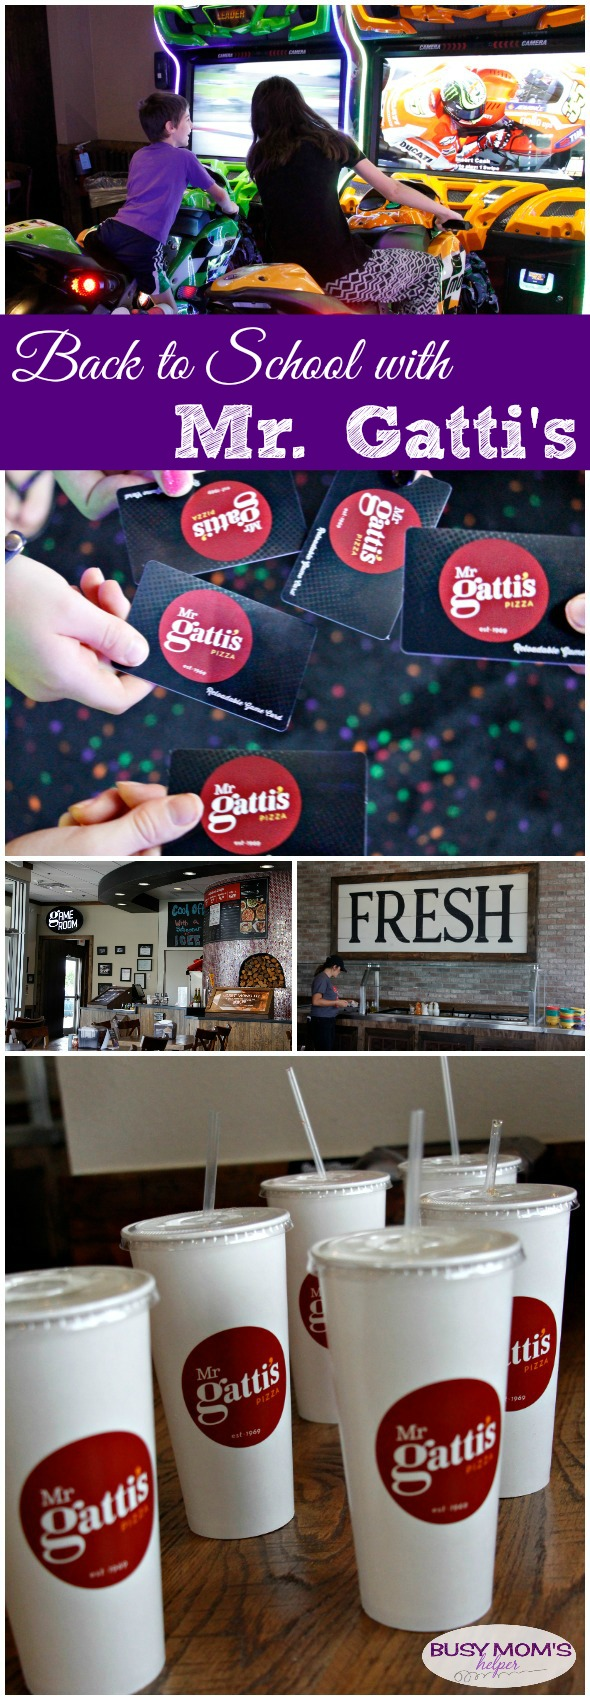 Back to School with Mr. Gatti's Pizza #AD #mrgattisbacktoschool Don't miss their back-to-school promotion: Get a free $5 game card with every buffet purchase!